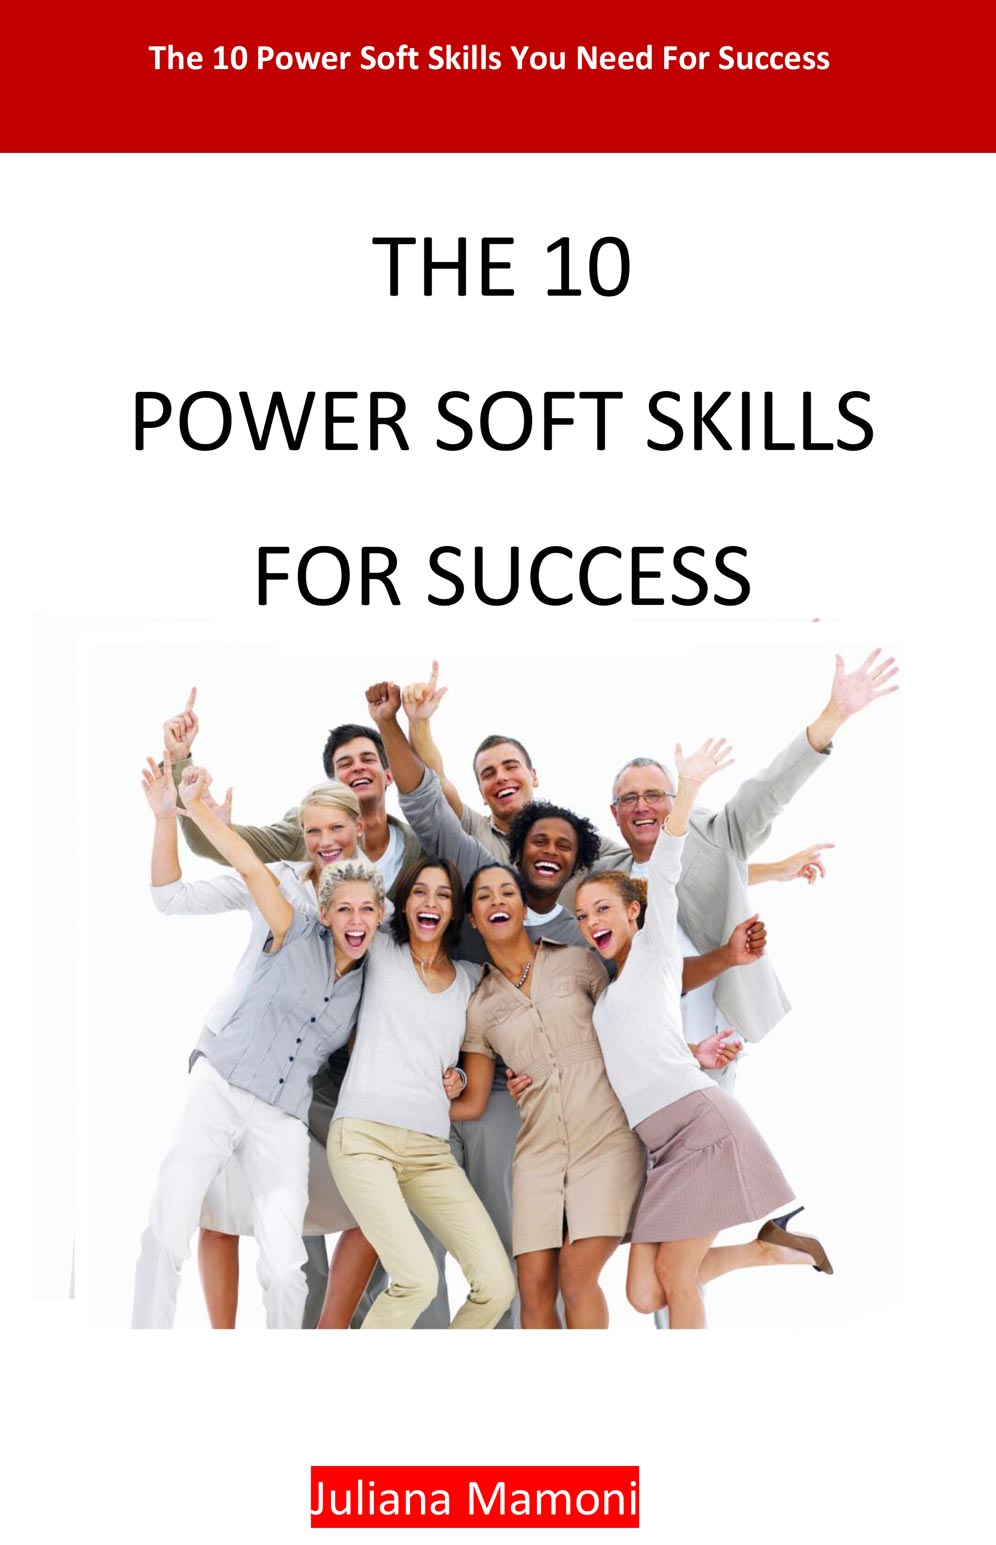 the power soft skills for success ebook jmamoni the 10 power soft skills for success ebook